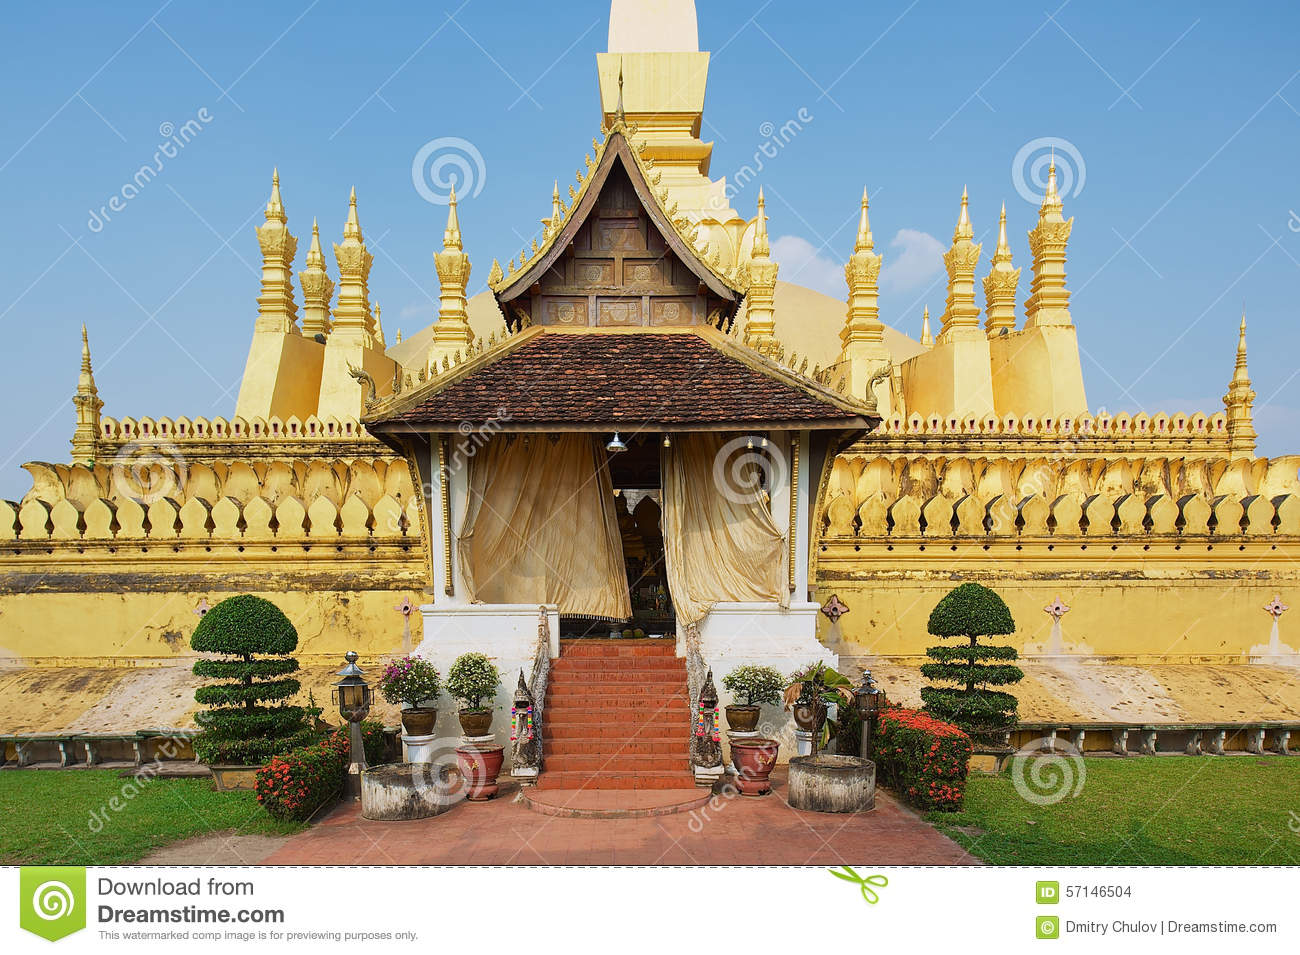 Exterior Of The Pha That Luang Stupa In Vientiane, Laos. Stock.